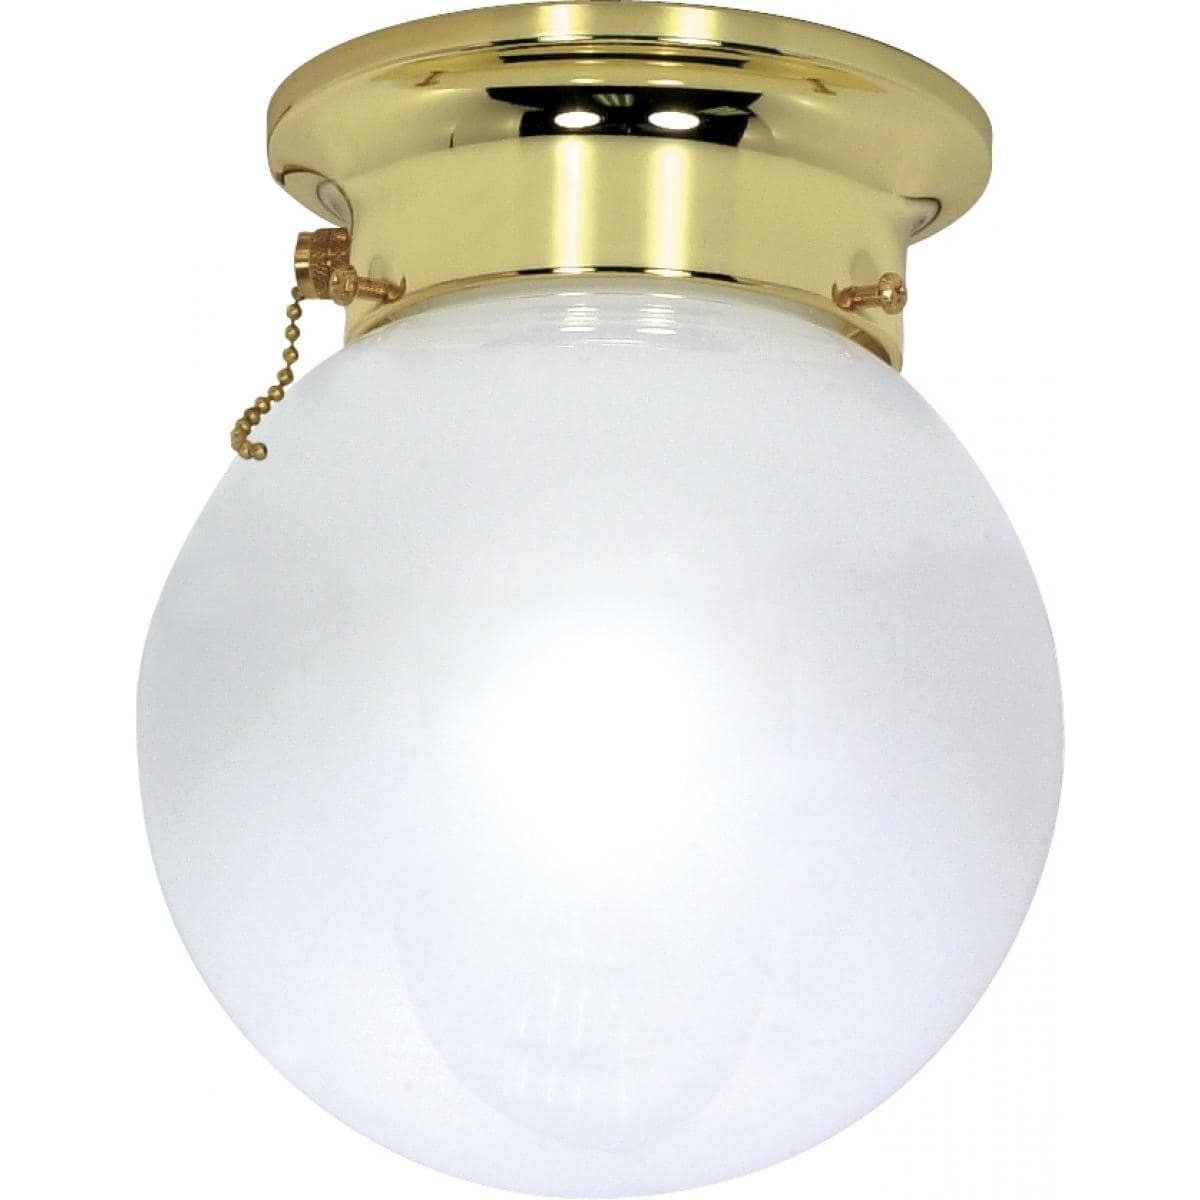 1 Light 6 In Flush W Pull Chain Grey Nuvo Lighting Flush Mount Lighting Pull Chain Light Fixture Flush Mount Ceiling